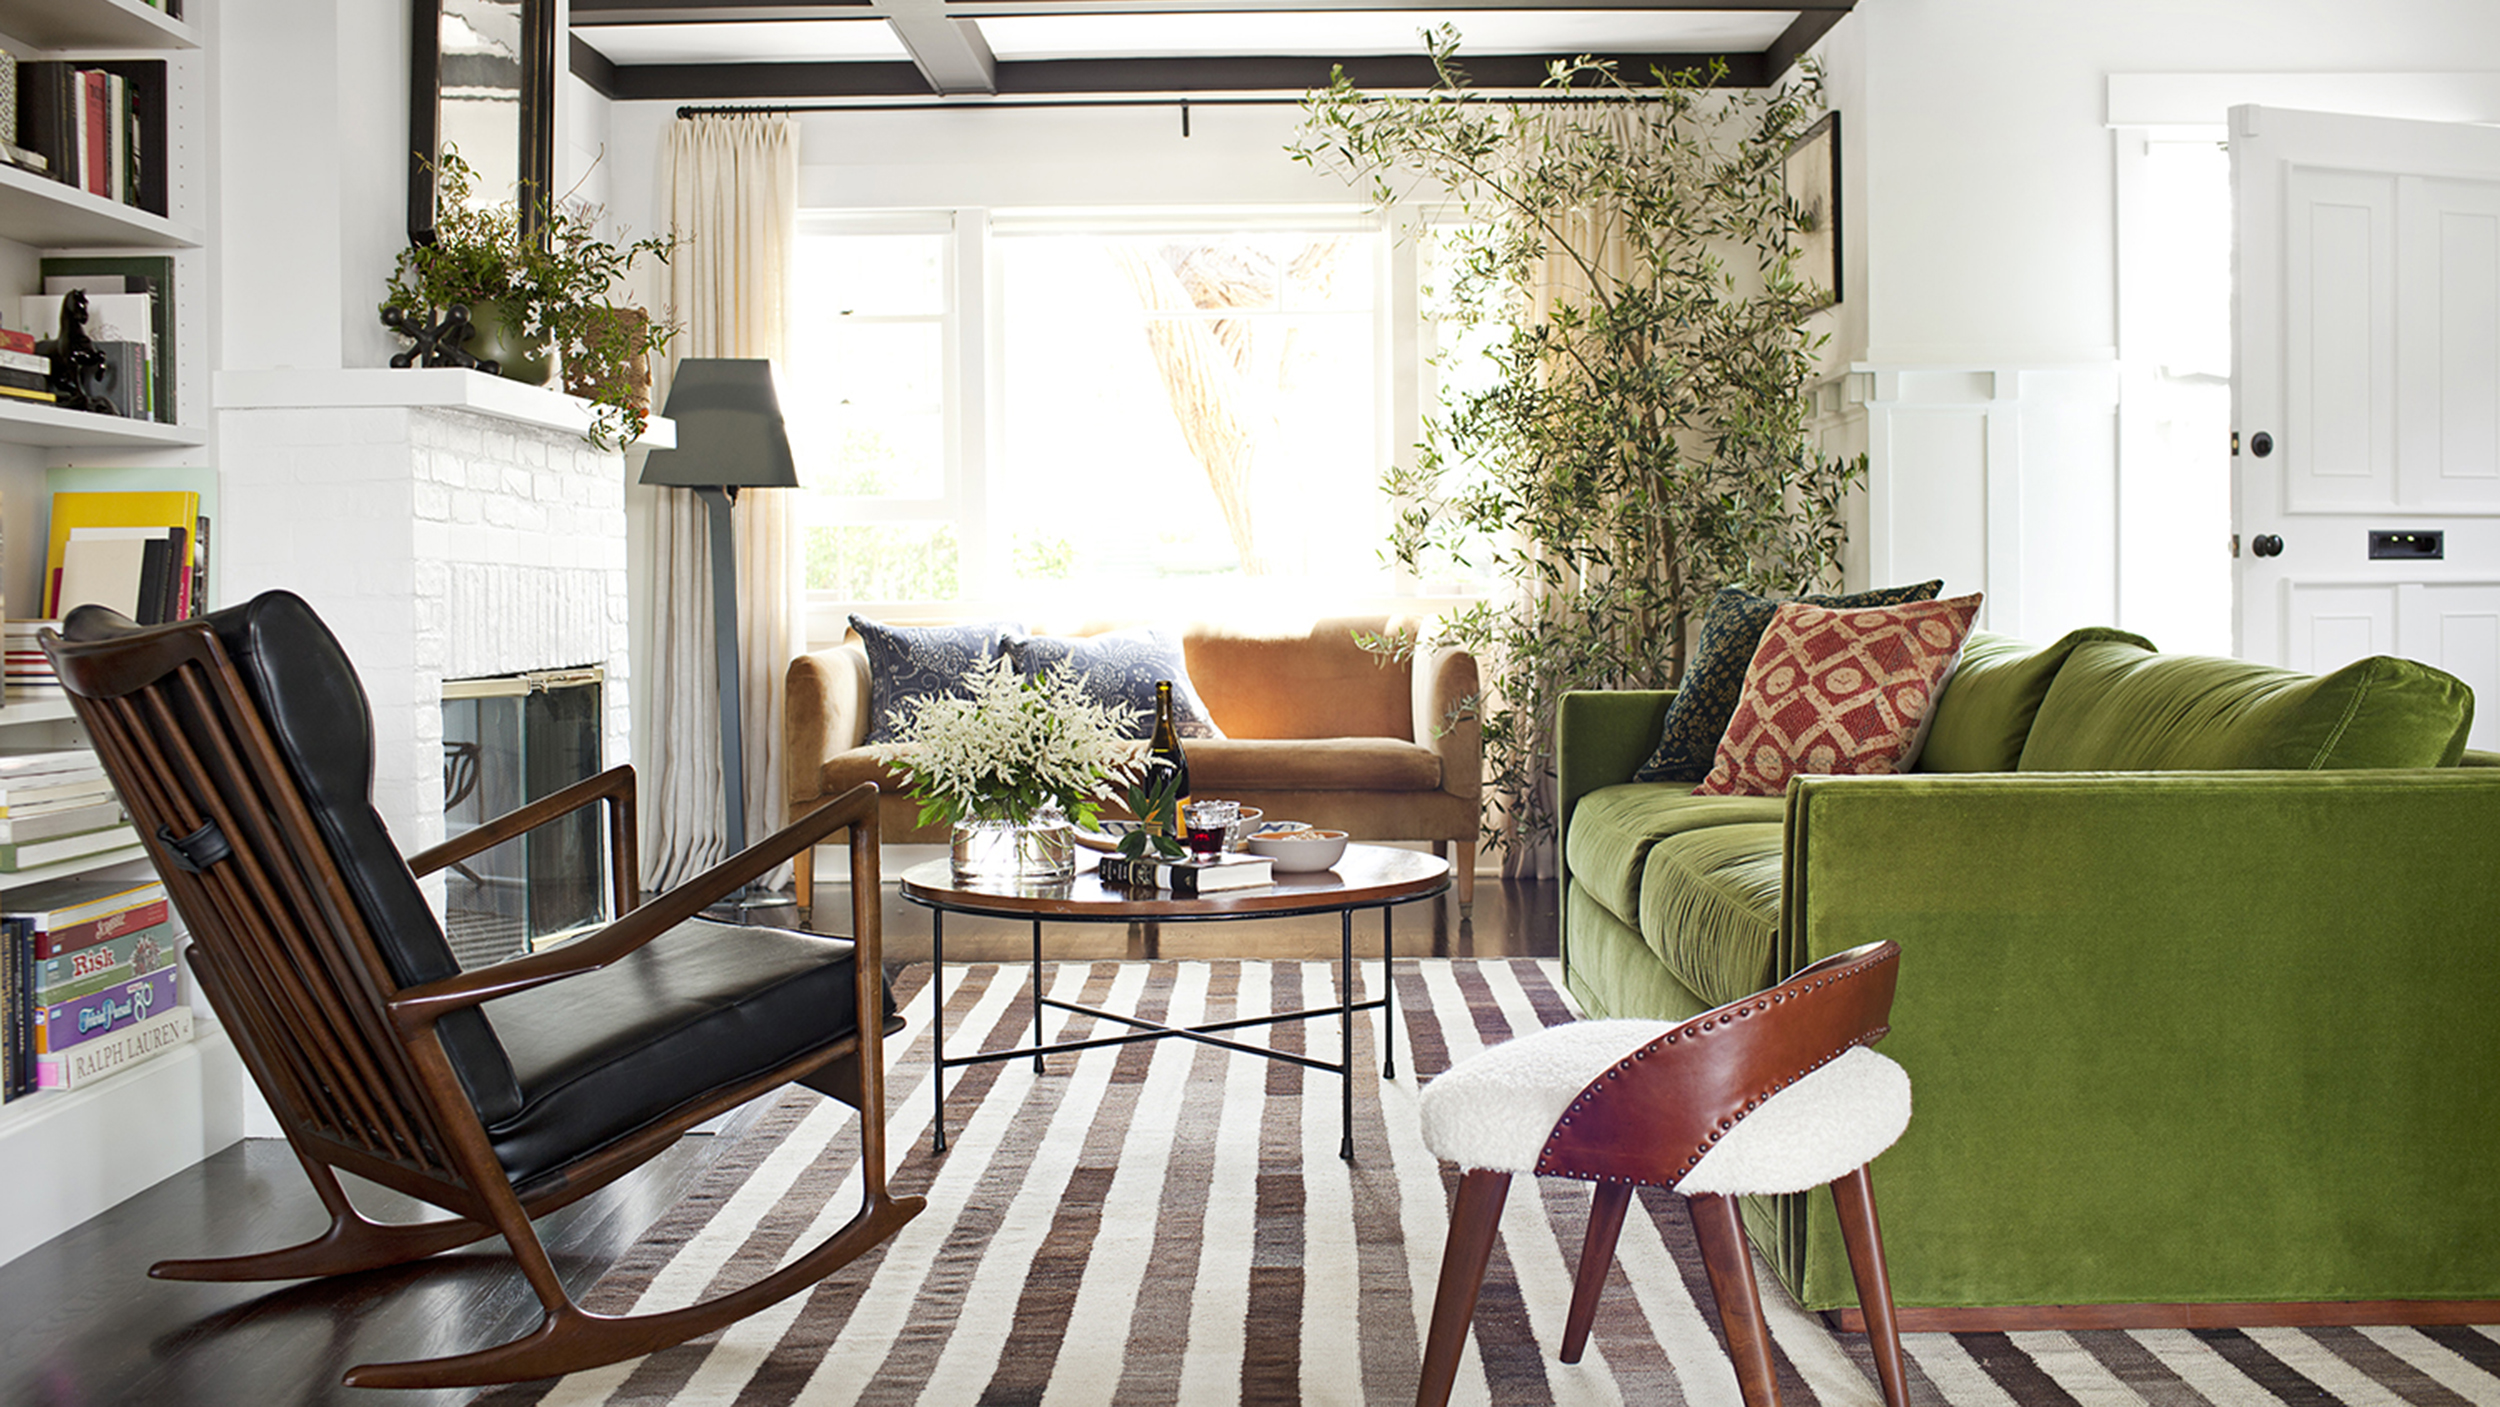 Make Your Home Feel Bigger With These Design Tricks